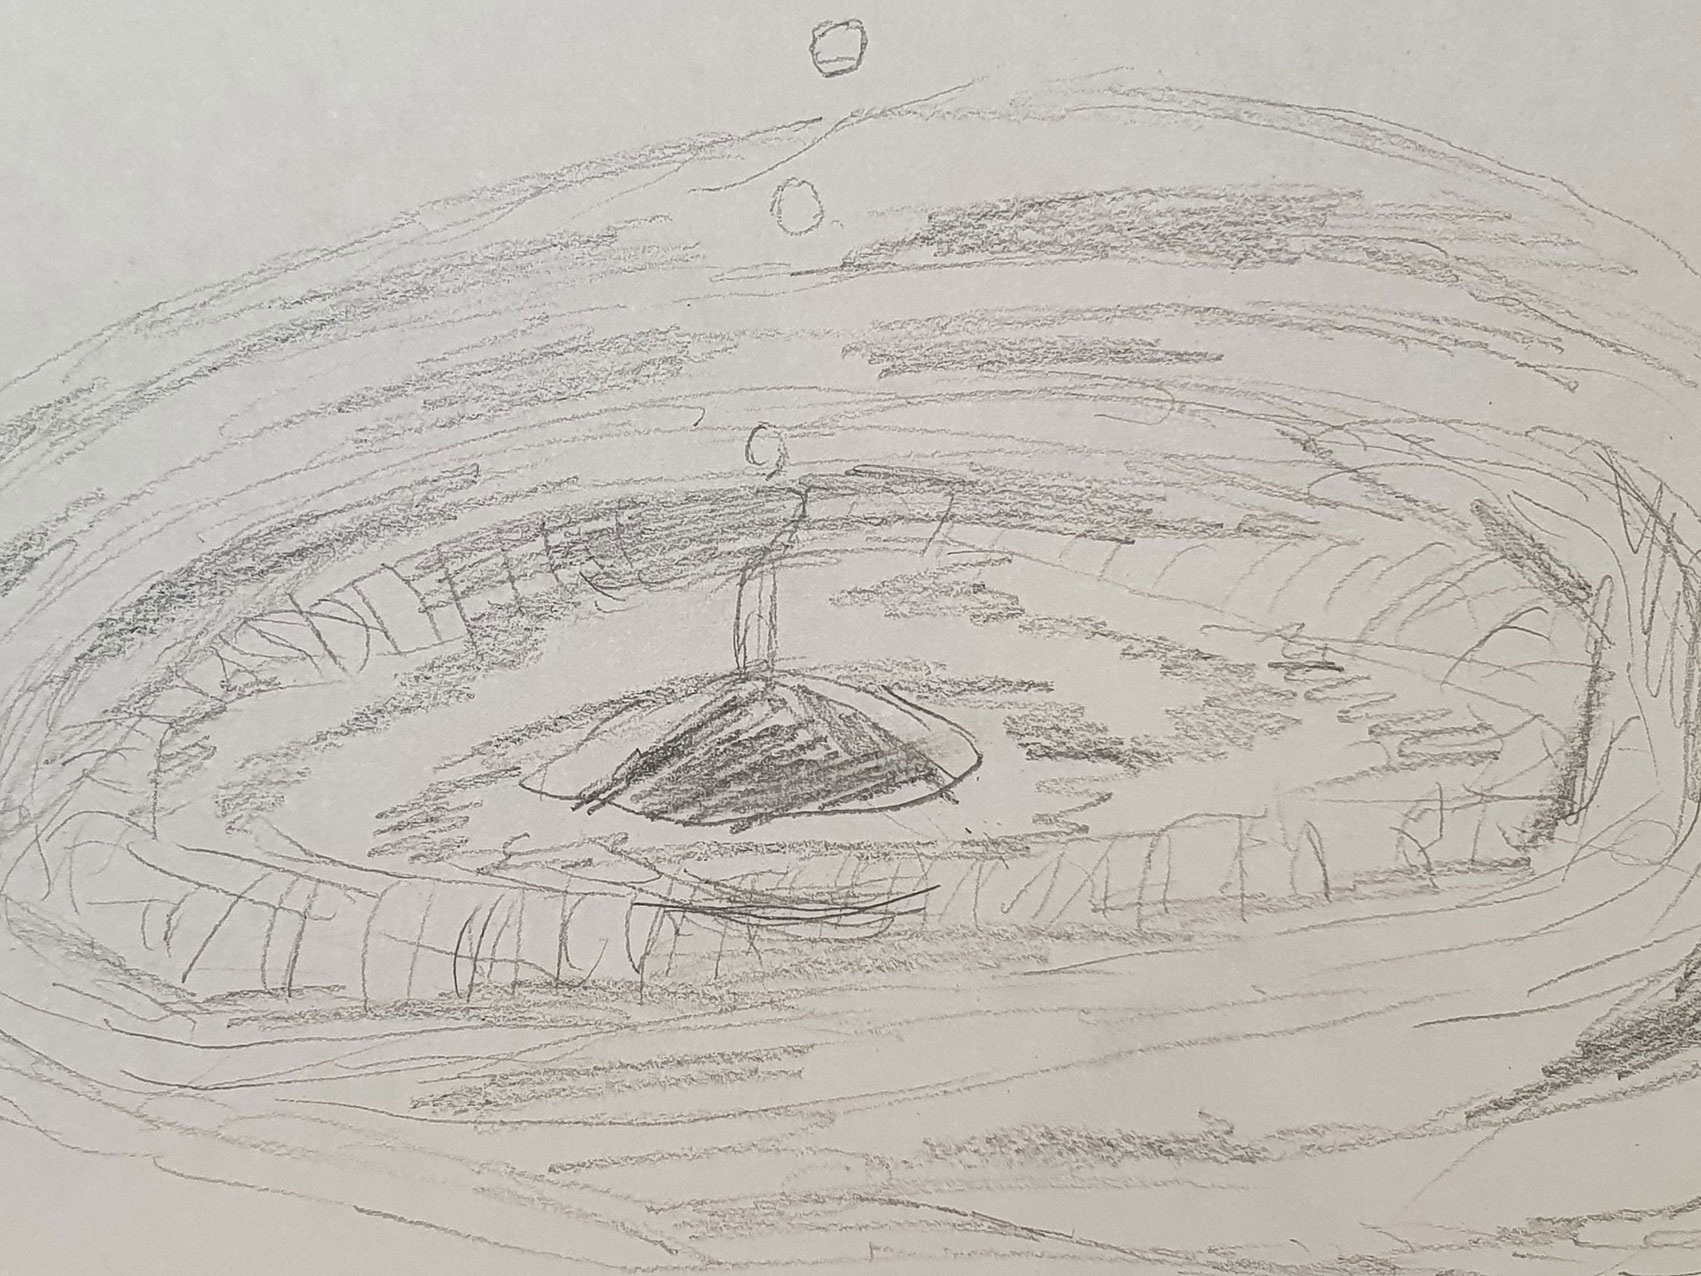 Child's pencil sketch of water droplet and ripples